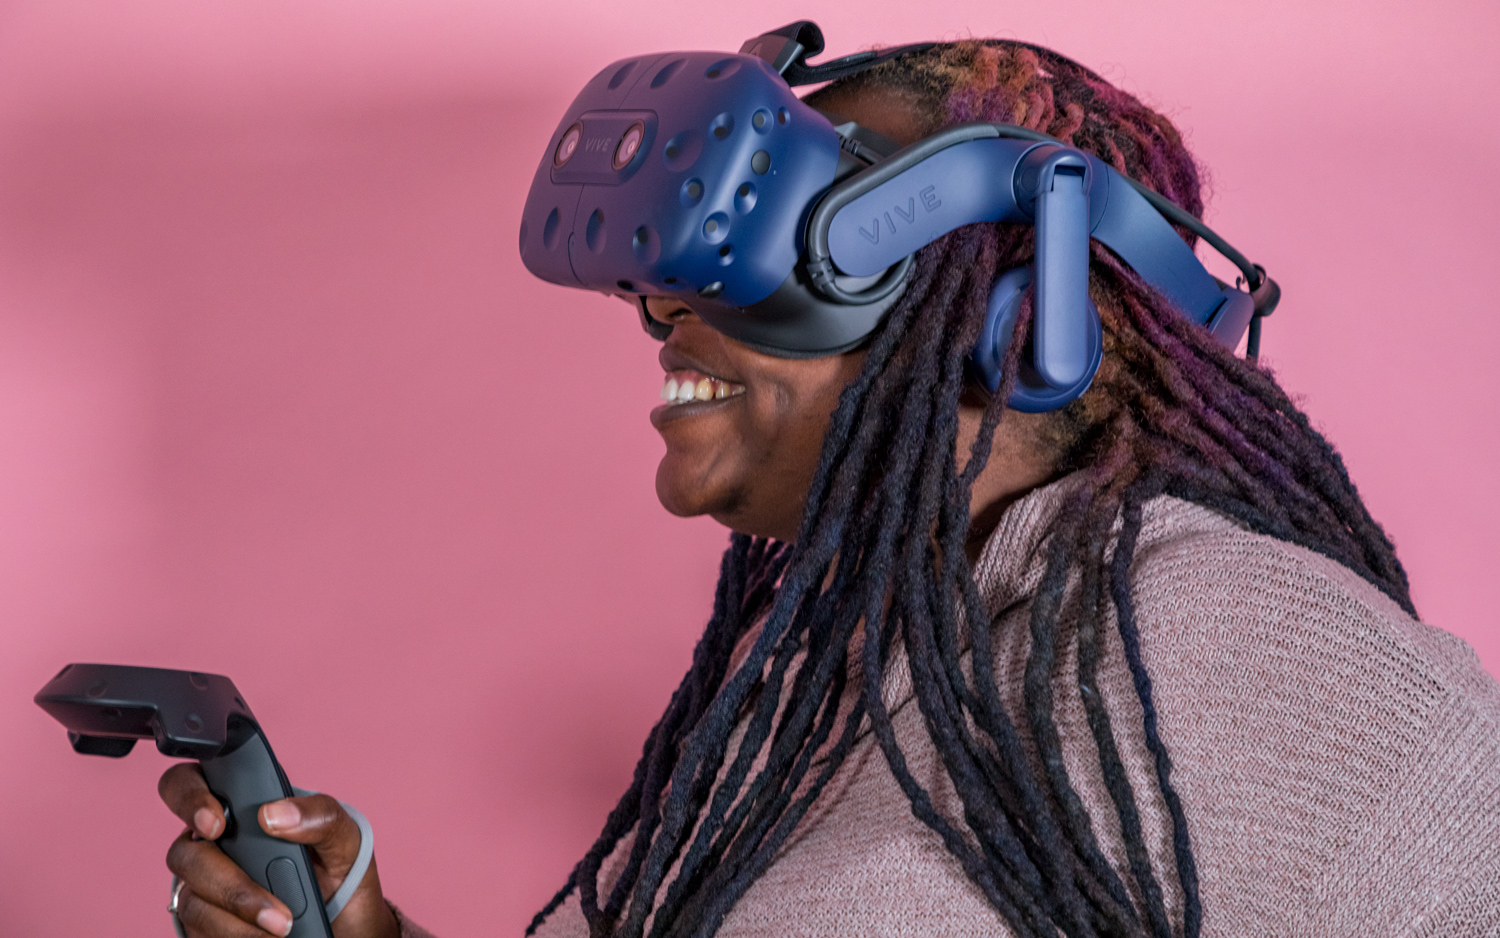 HTC Vive Pro Review: A Brilliant VR Headset, at a Cost